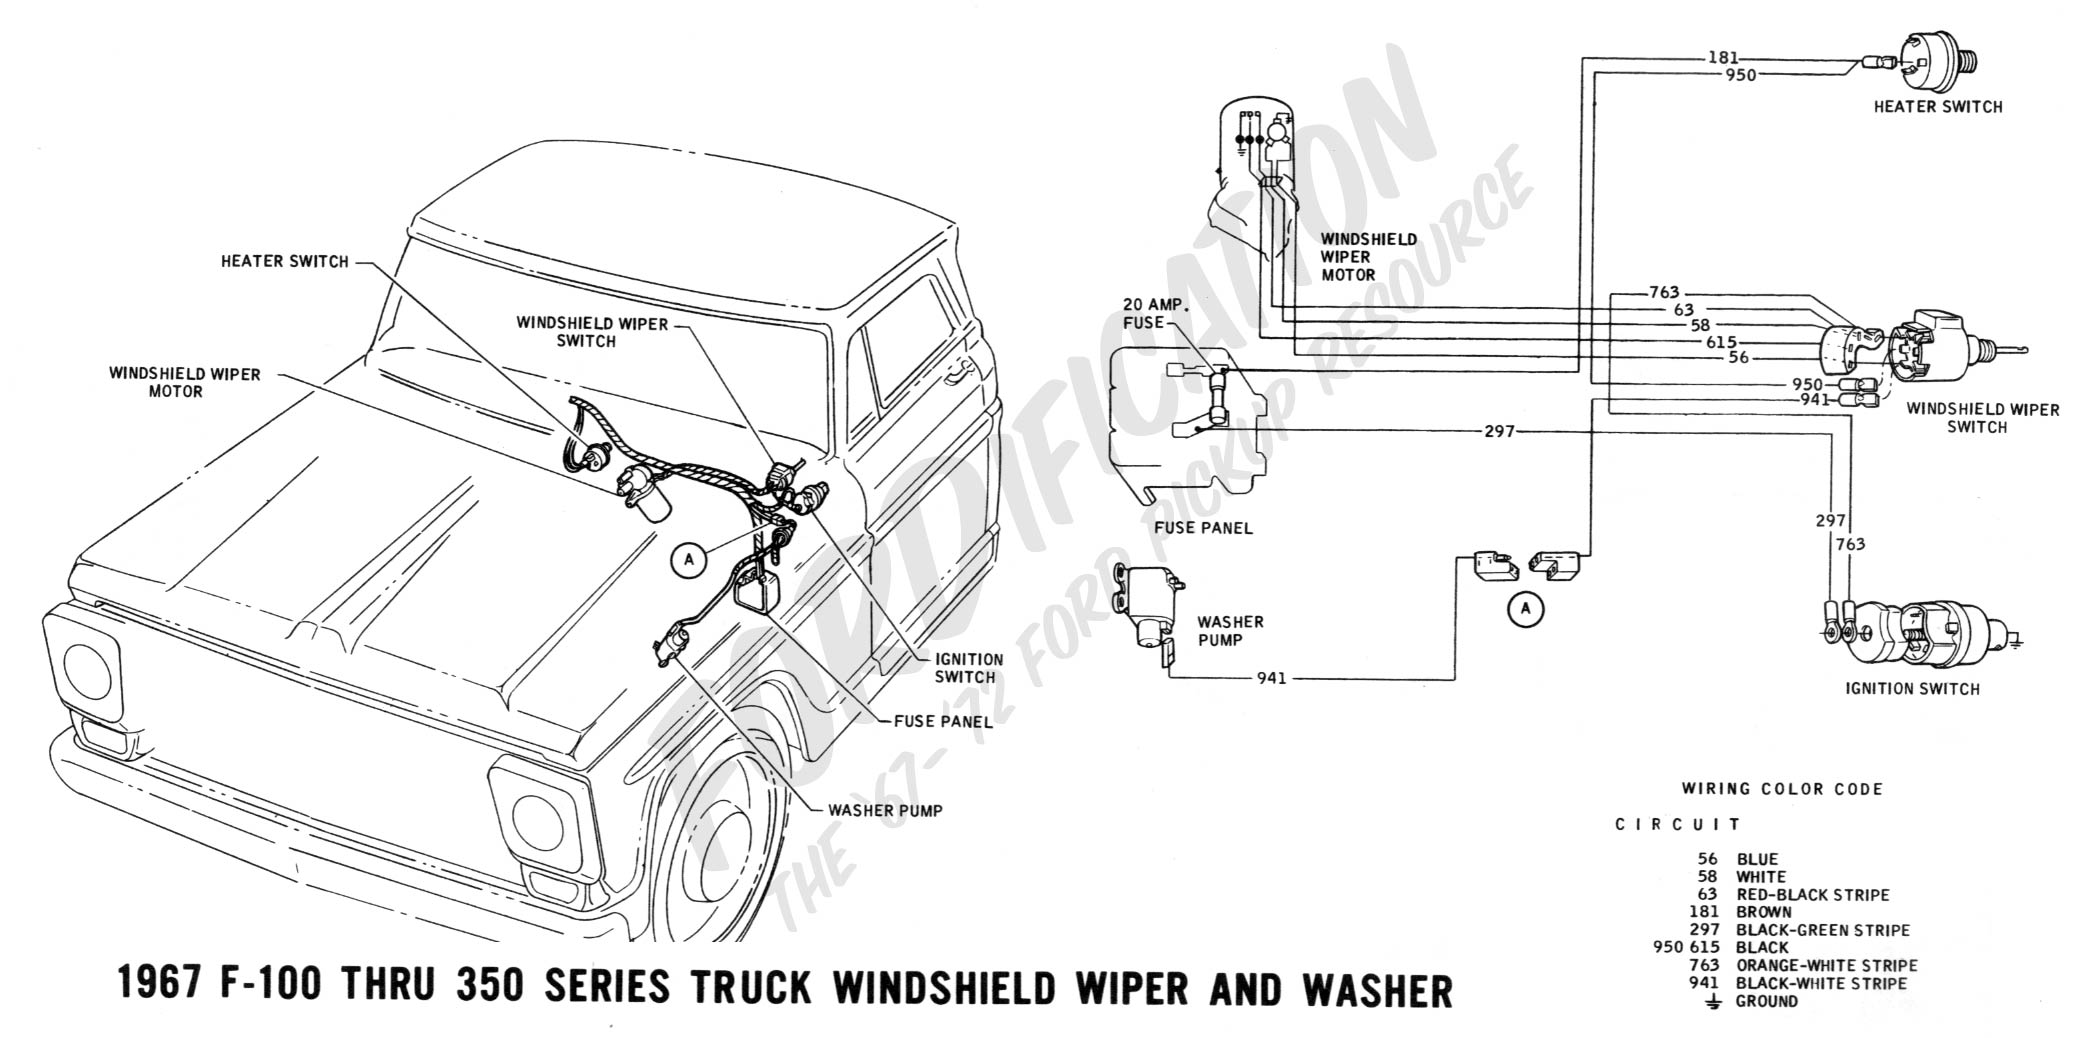 Ford truck technical drawings and schematics section h wiring 1967 f 100 thru f 350 windshield wiper and washer publicscrutiny Image collections